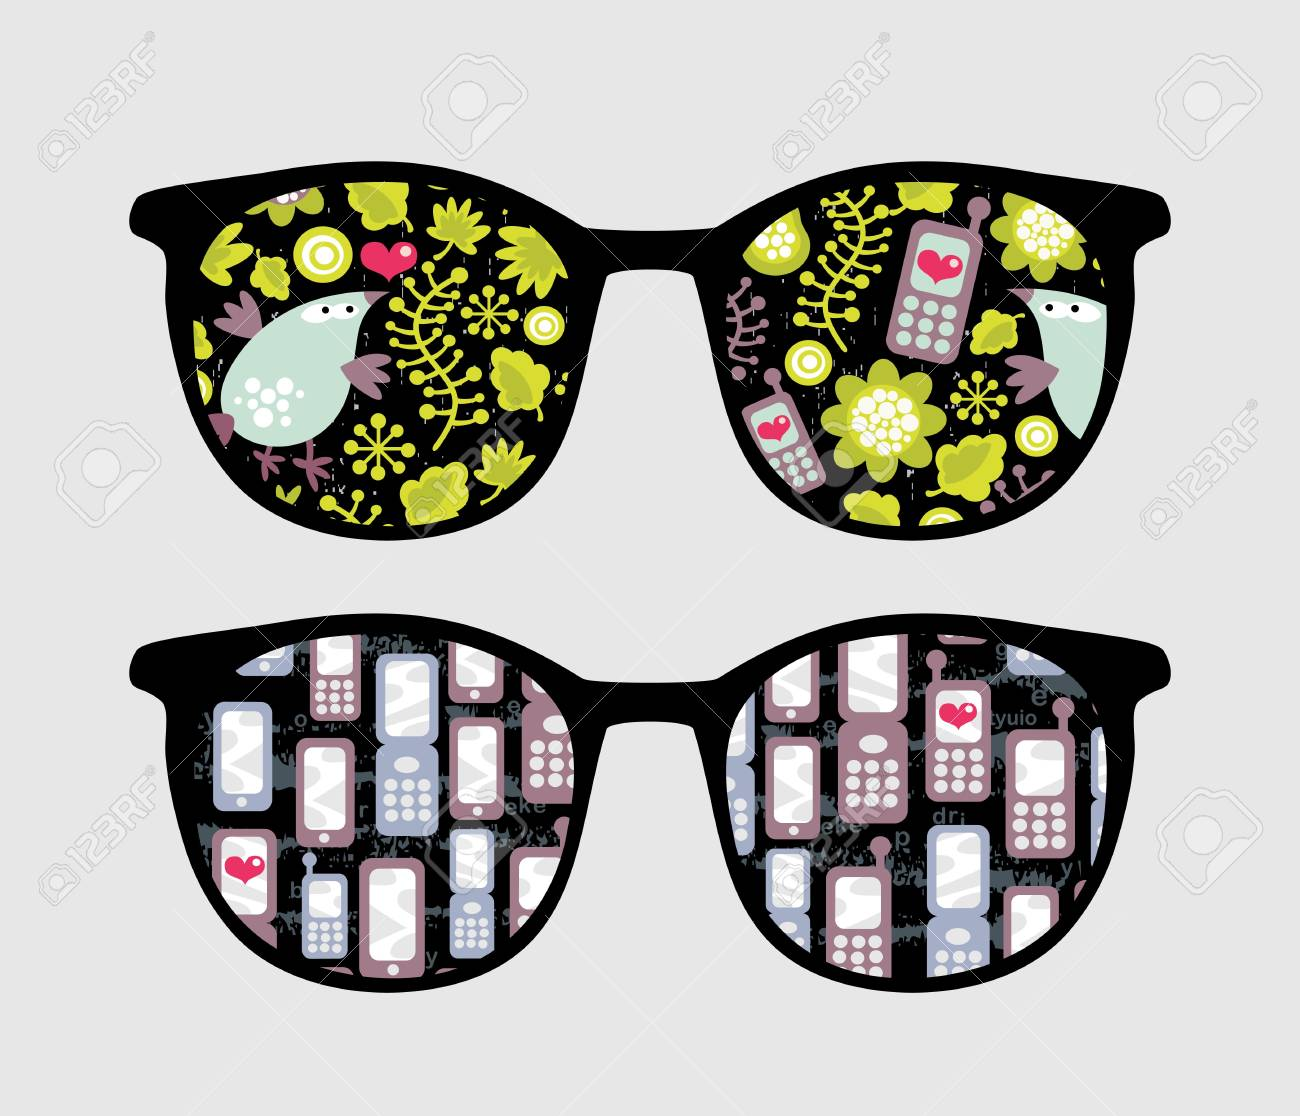 Retro sunglasses with mobile phones reflection in it. Stock Vector - 13057895